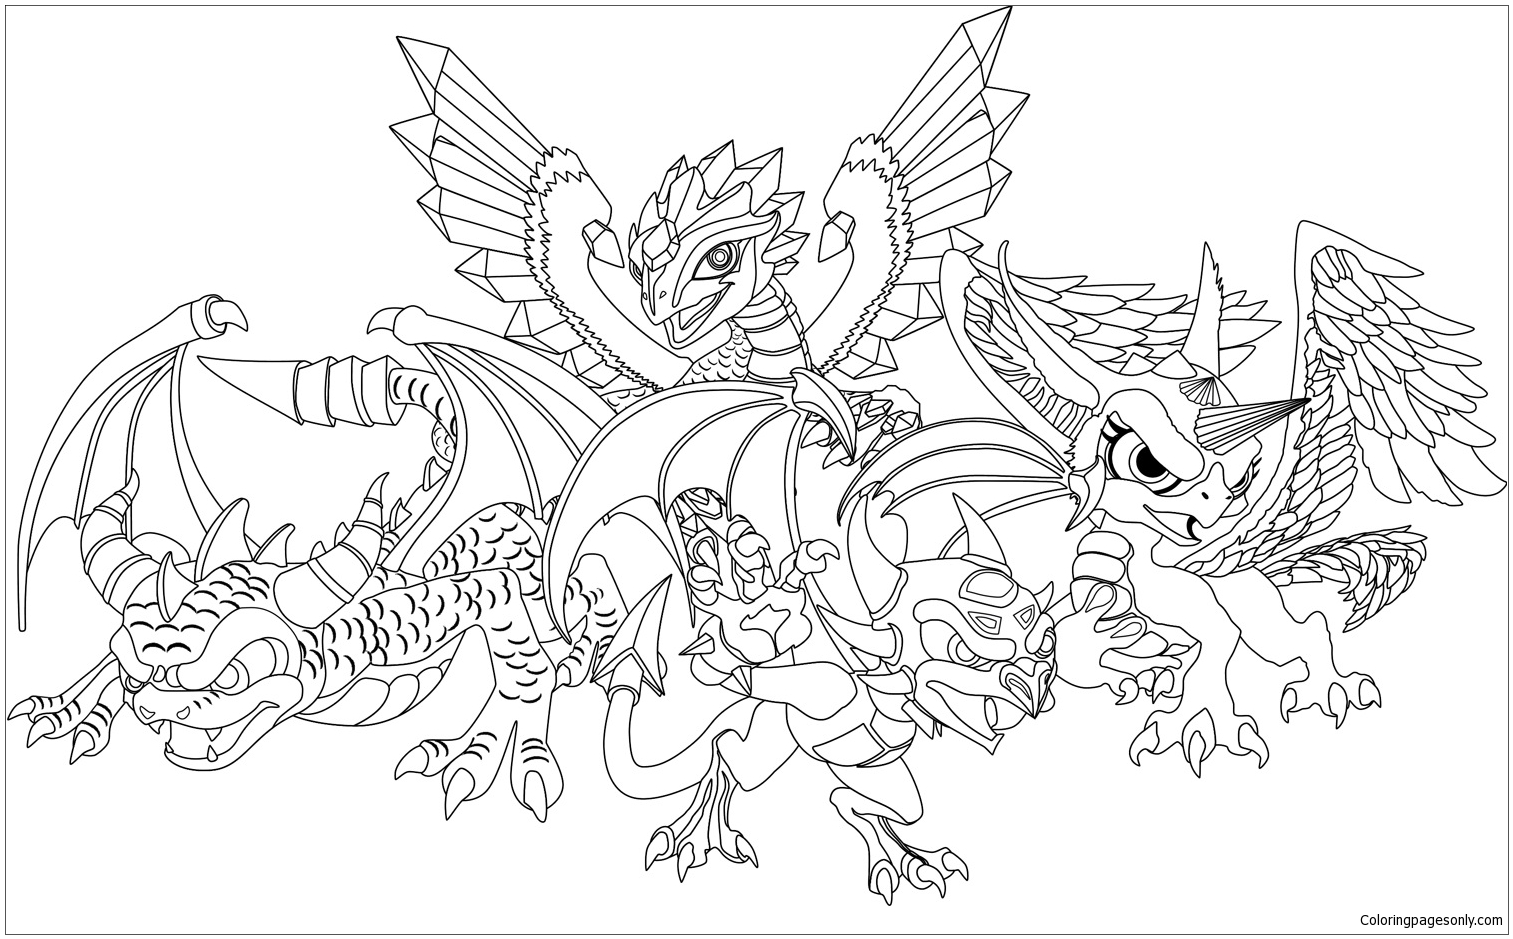 Skylanders Dragons Coloring Page - Free Coloring Pages Online